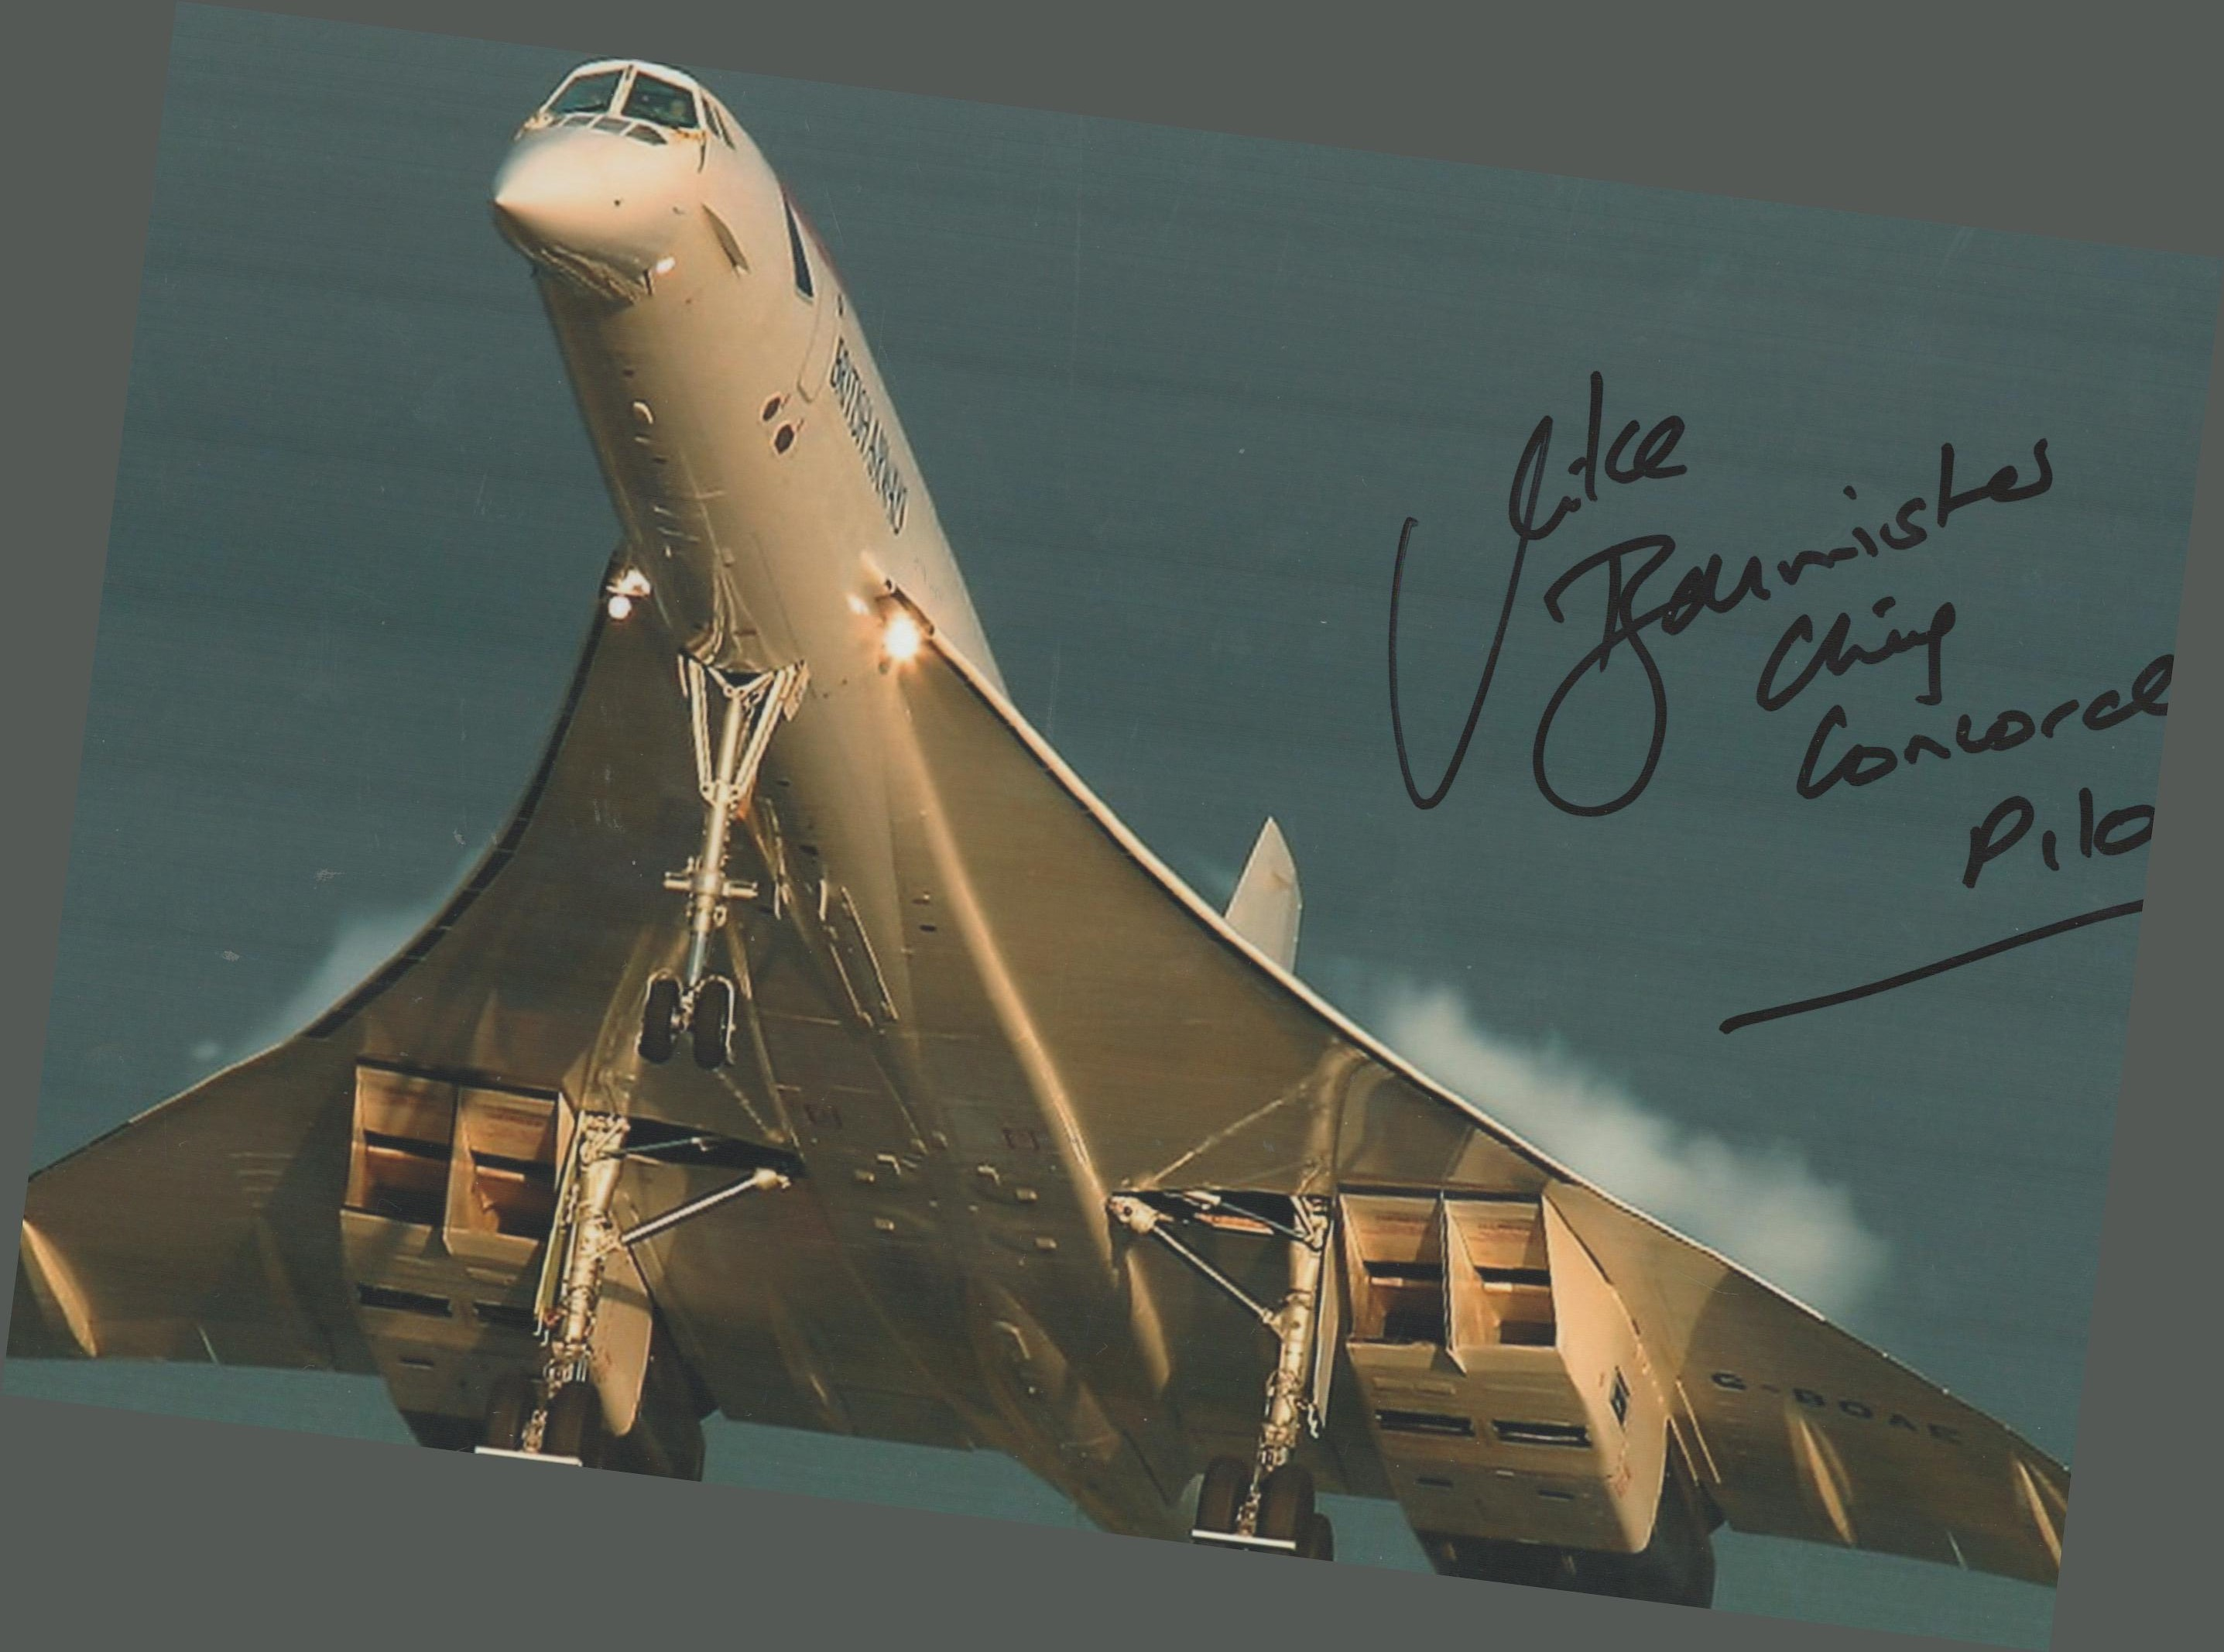 Concorde Capt Mike Bannister signed stunning sunset take off 12 x 8 inch colour photo. Good